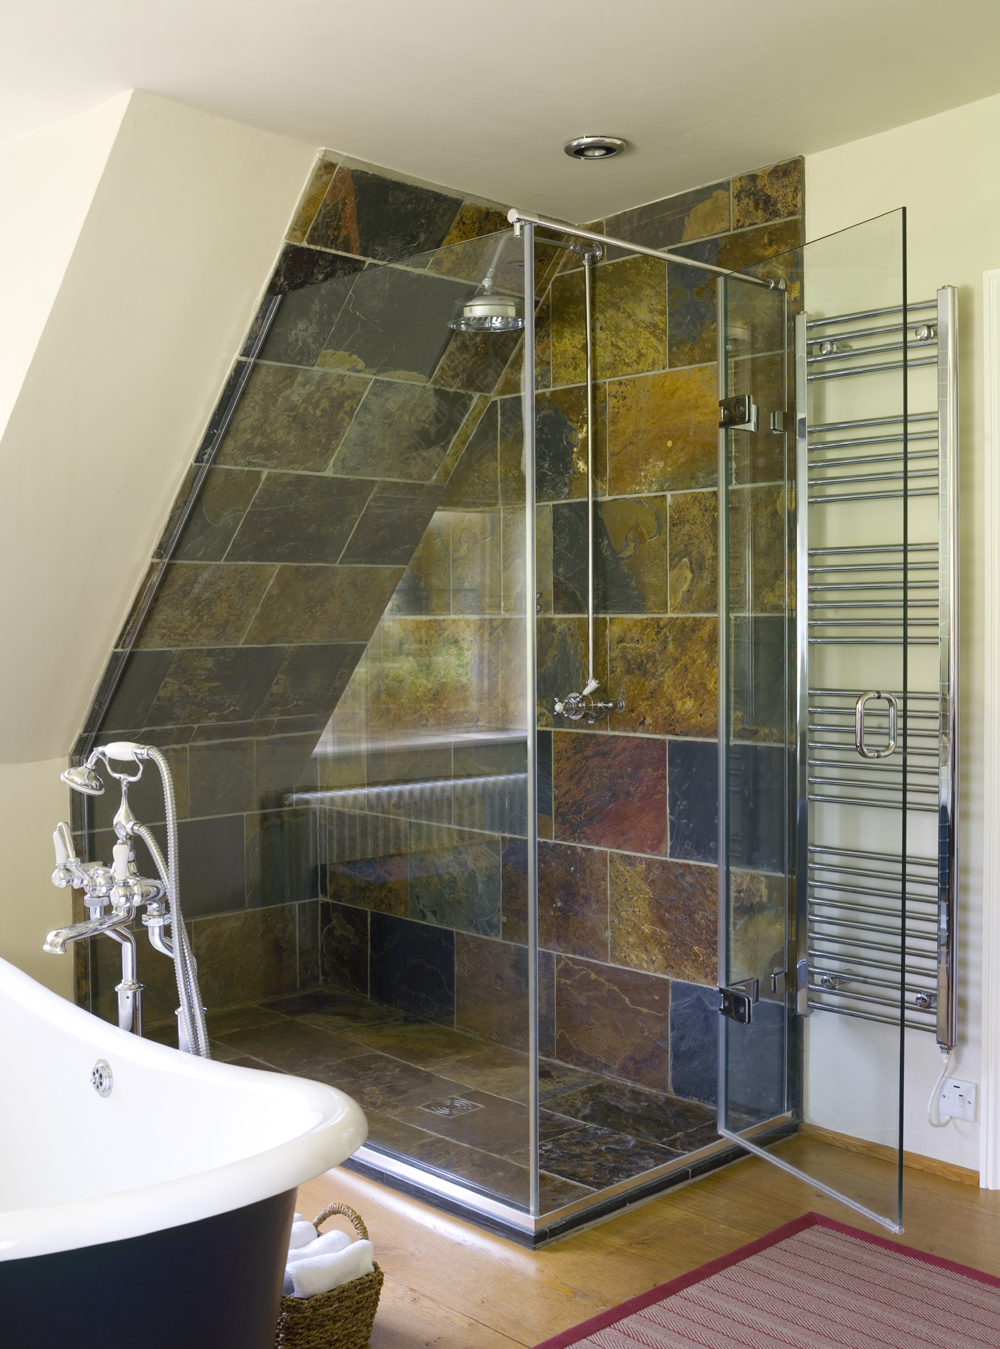 the shower lab |